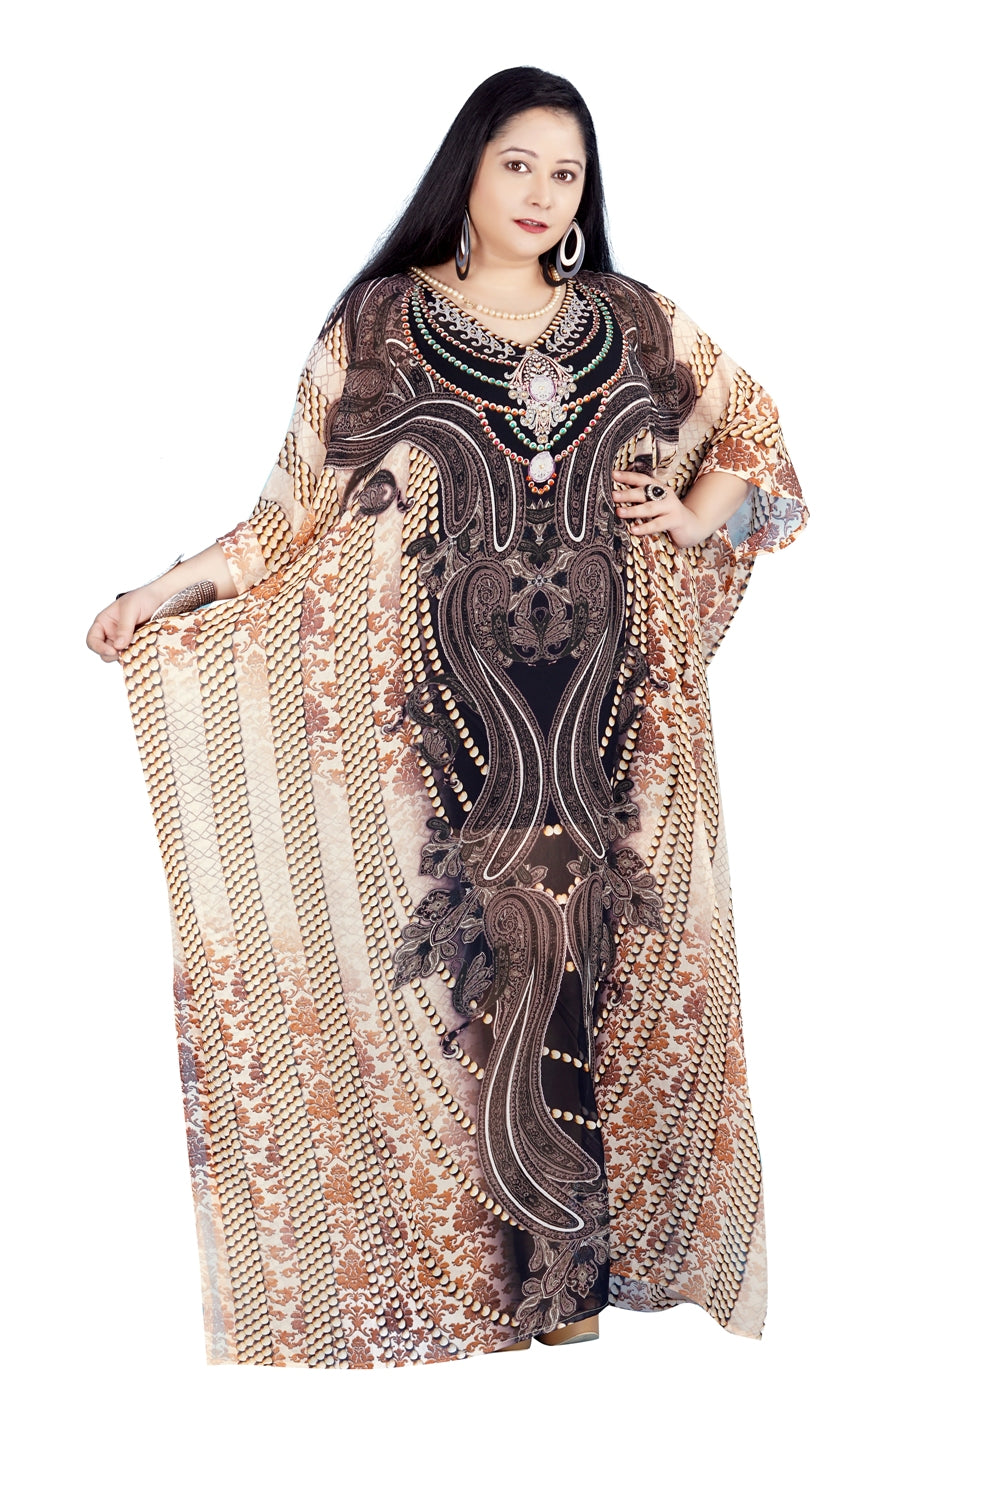 Baroque Art on Silk Kaftan with side splits embellishments traditional ensemble - Silk kaftan